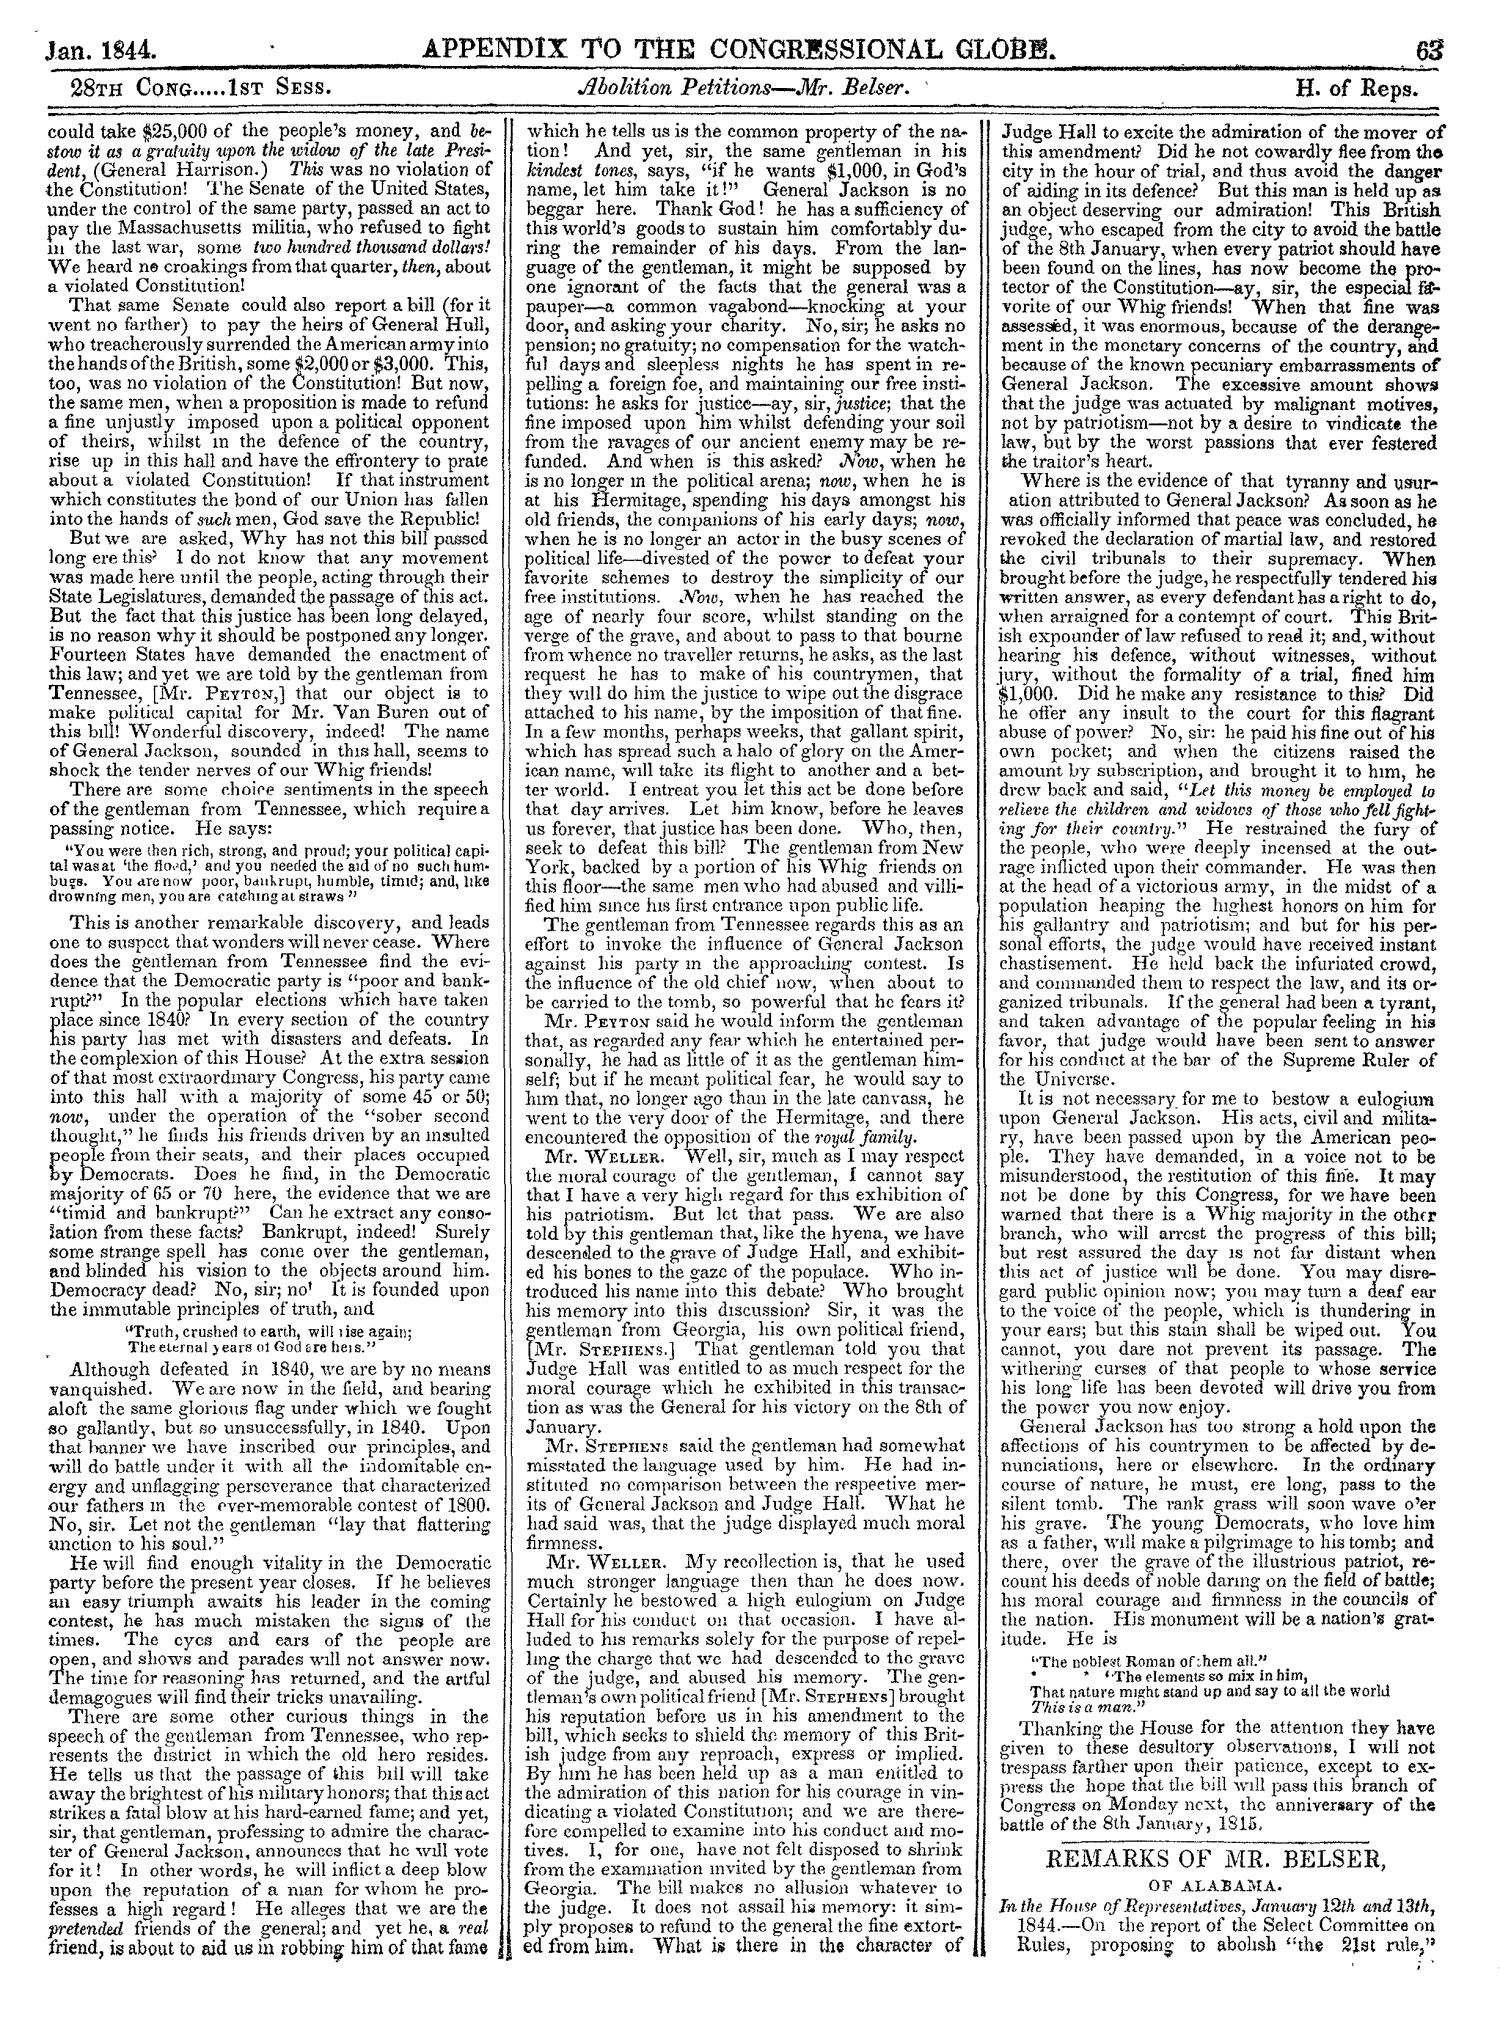 The Congressional Globe, Volume 13, Part 2: Twenty-Eighth Congress, First Session                                                                                                      63